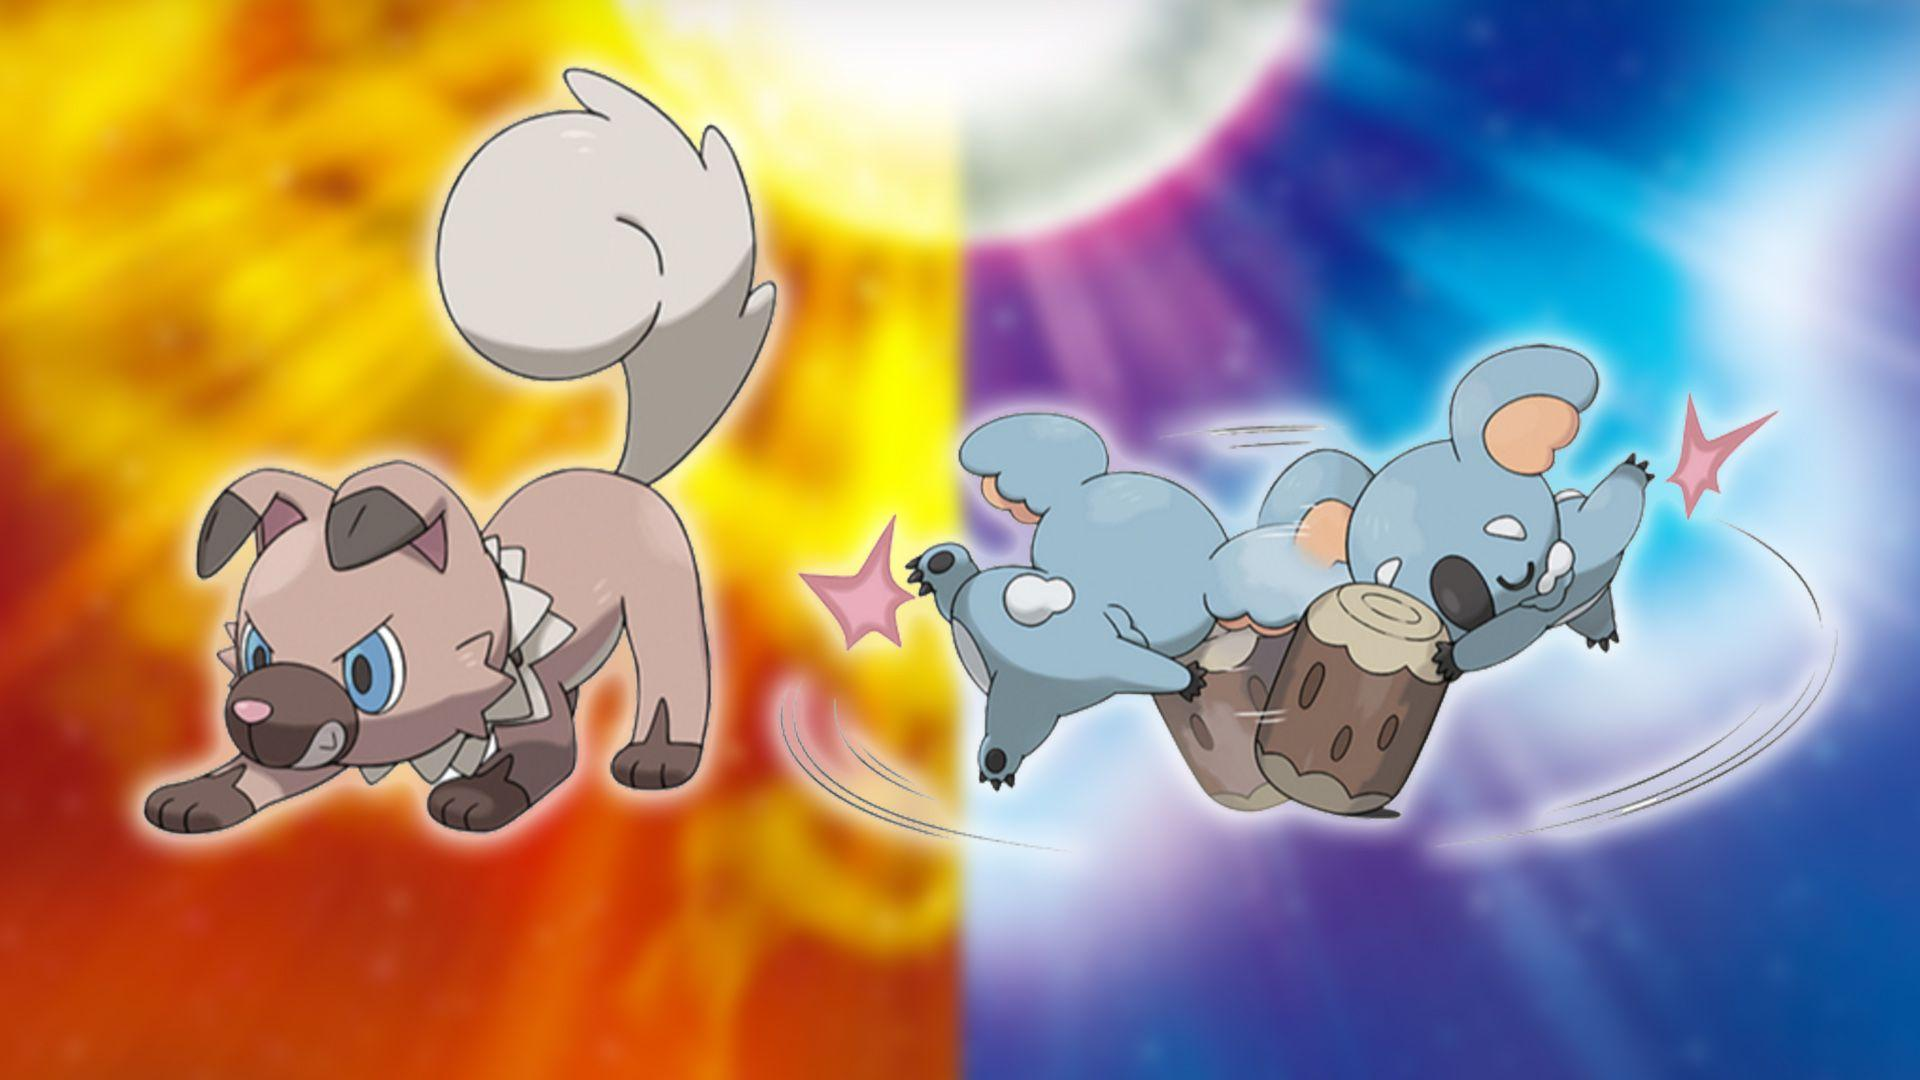 Rockruff and Komala are the two cutest new additions to Pokémon Sun